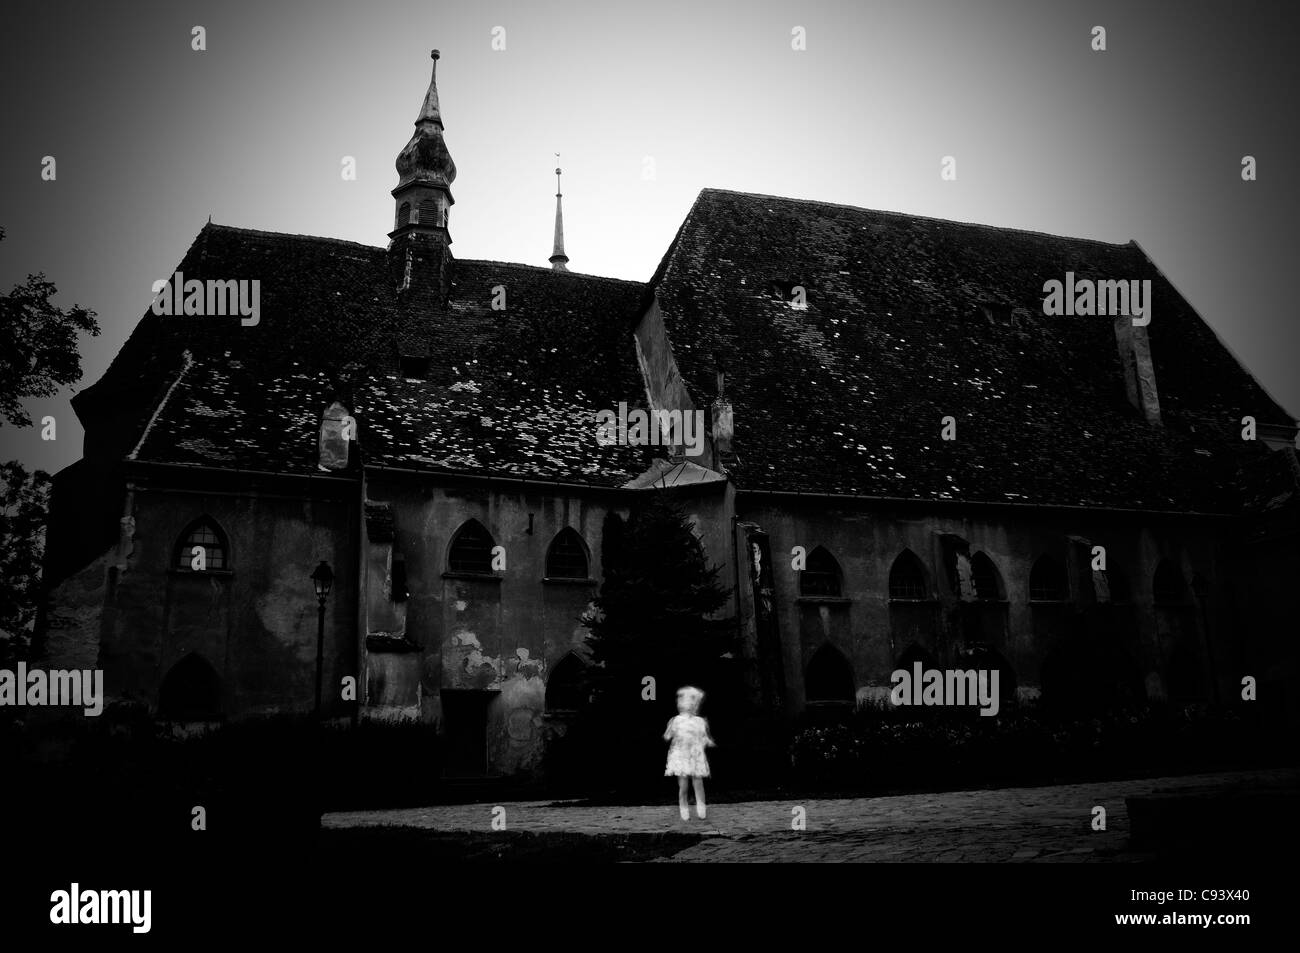 Romania, Sighisoara.Church. Ghost appearance - Stock Image